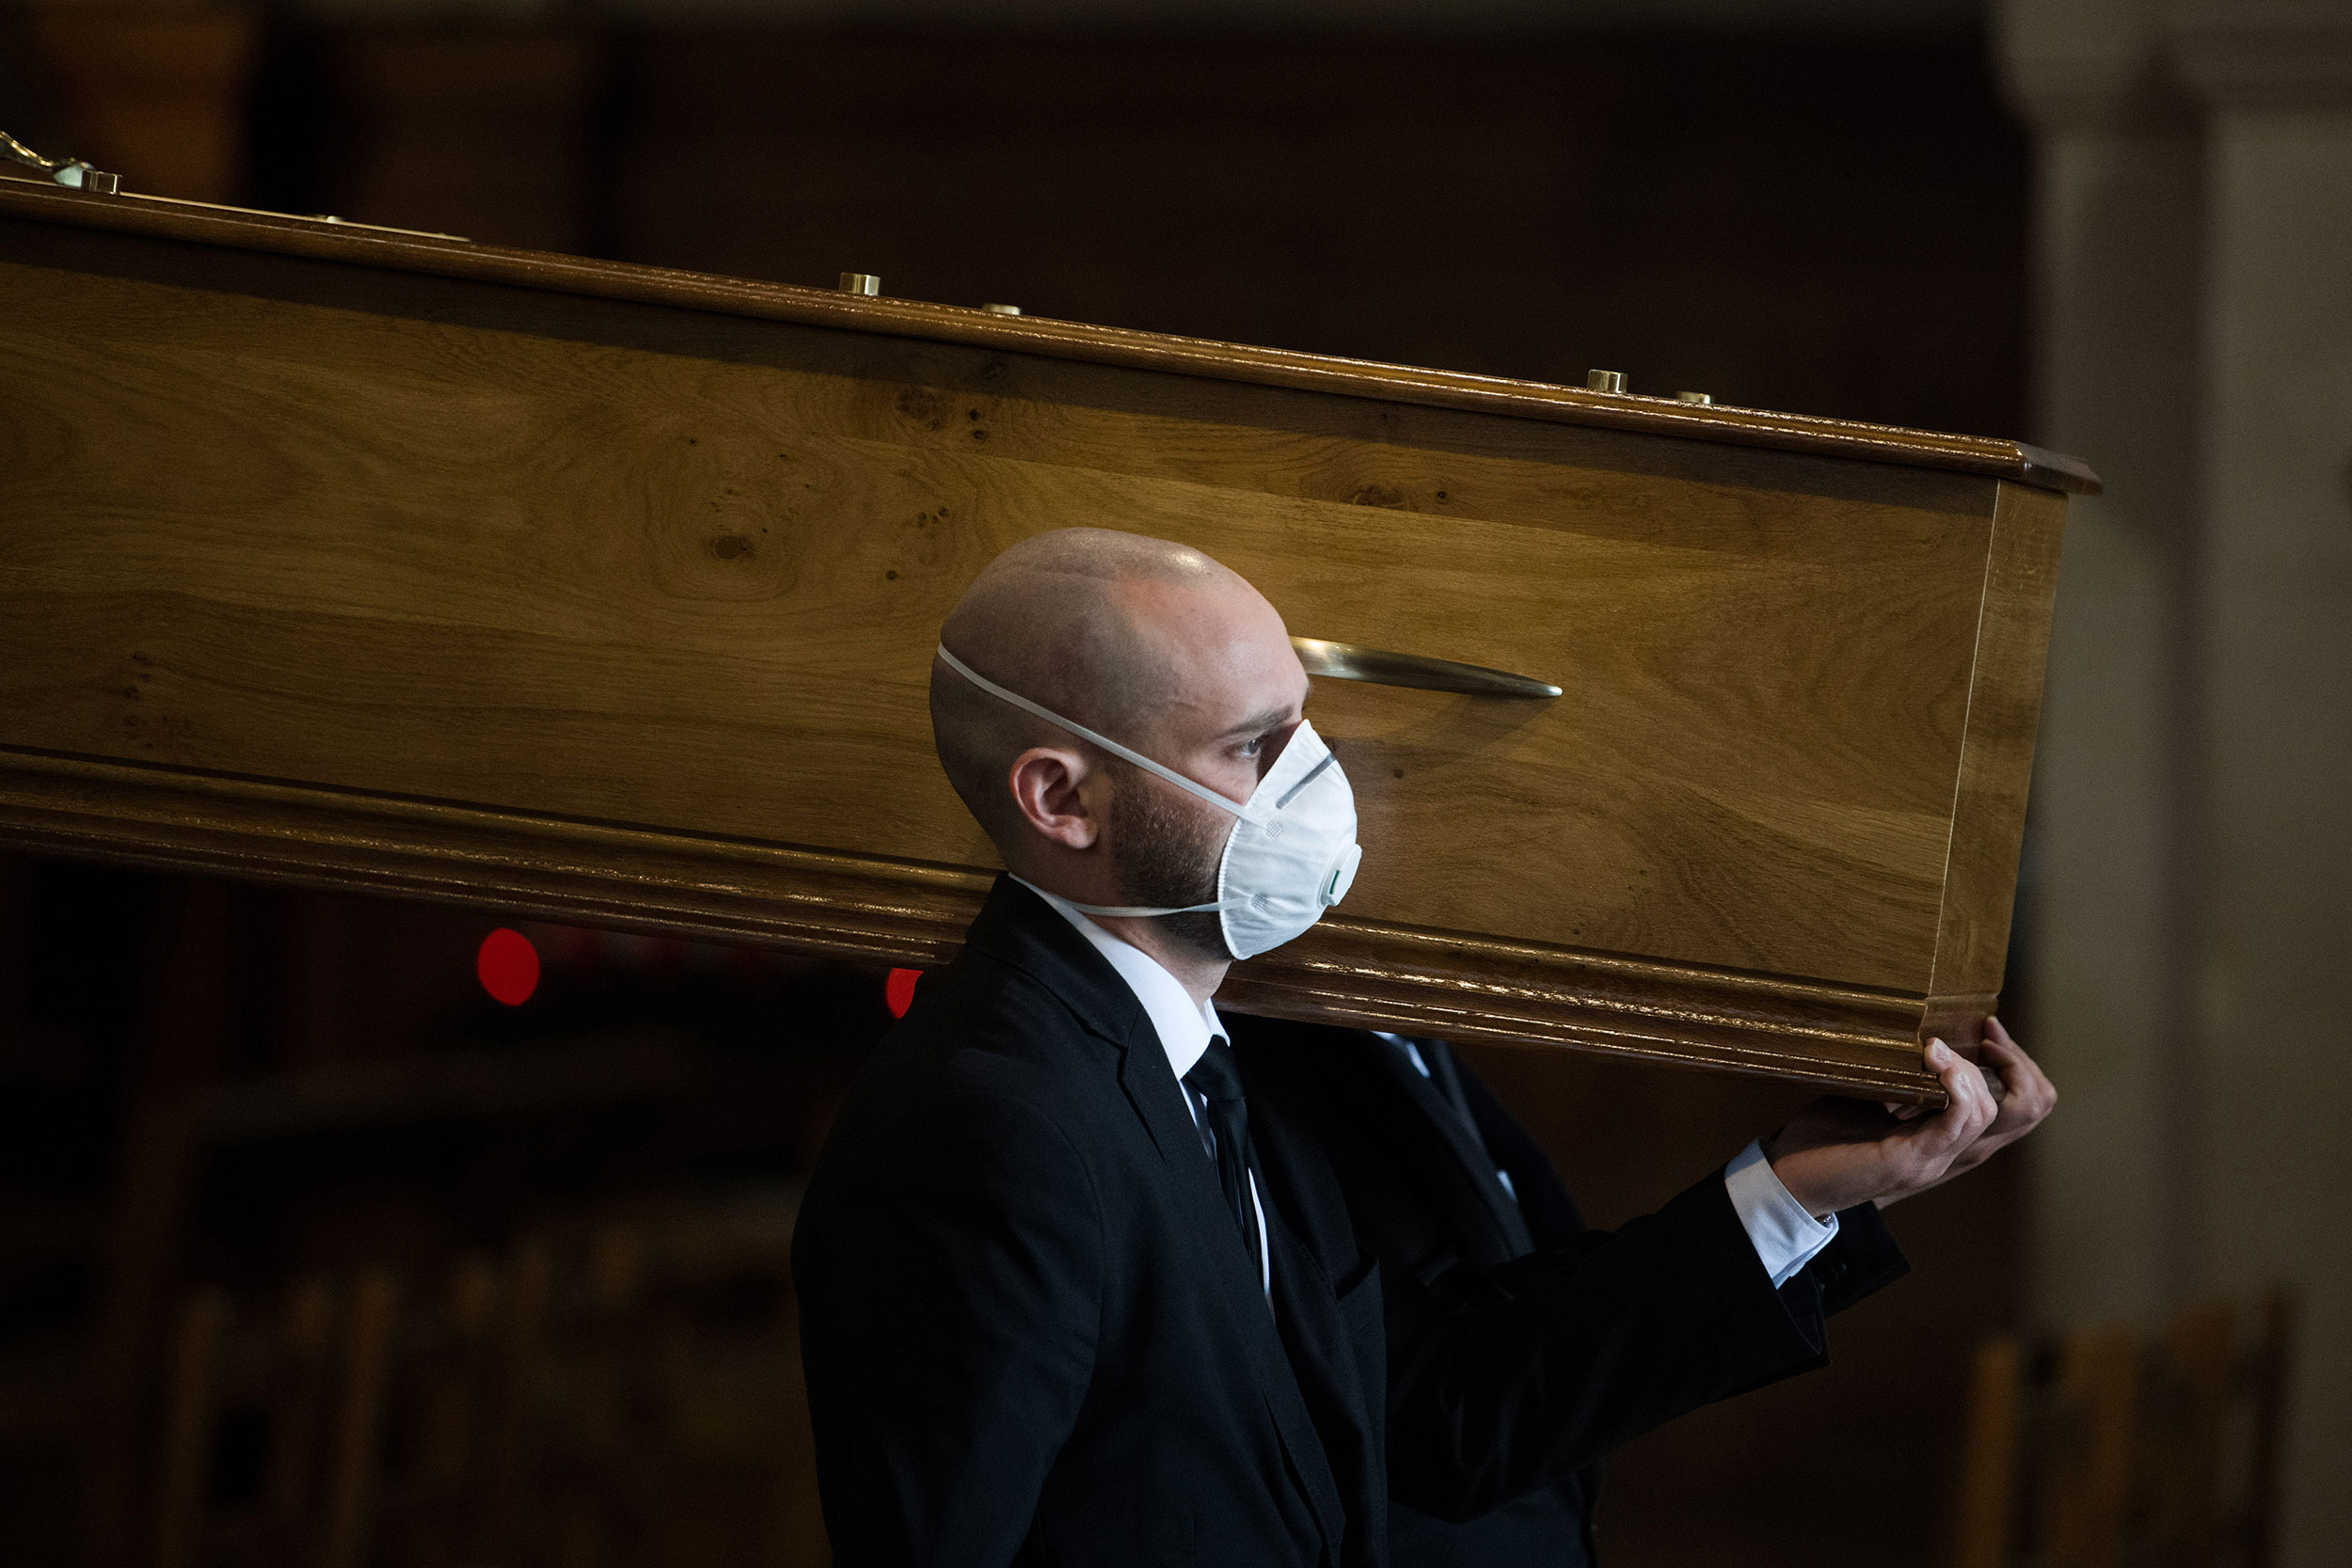 A pall bearer helps carry the coffin of a coronavirus victim through Saint Francois Xavier church at a funeral service in Paris, France, on April 16.